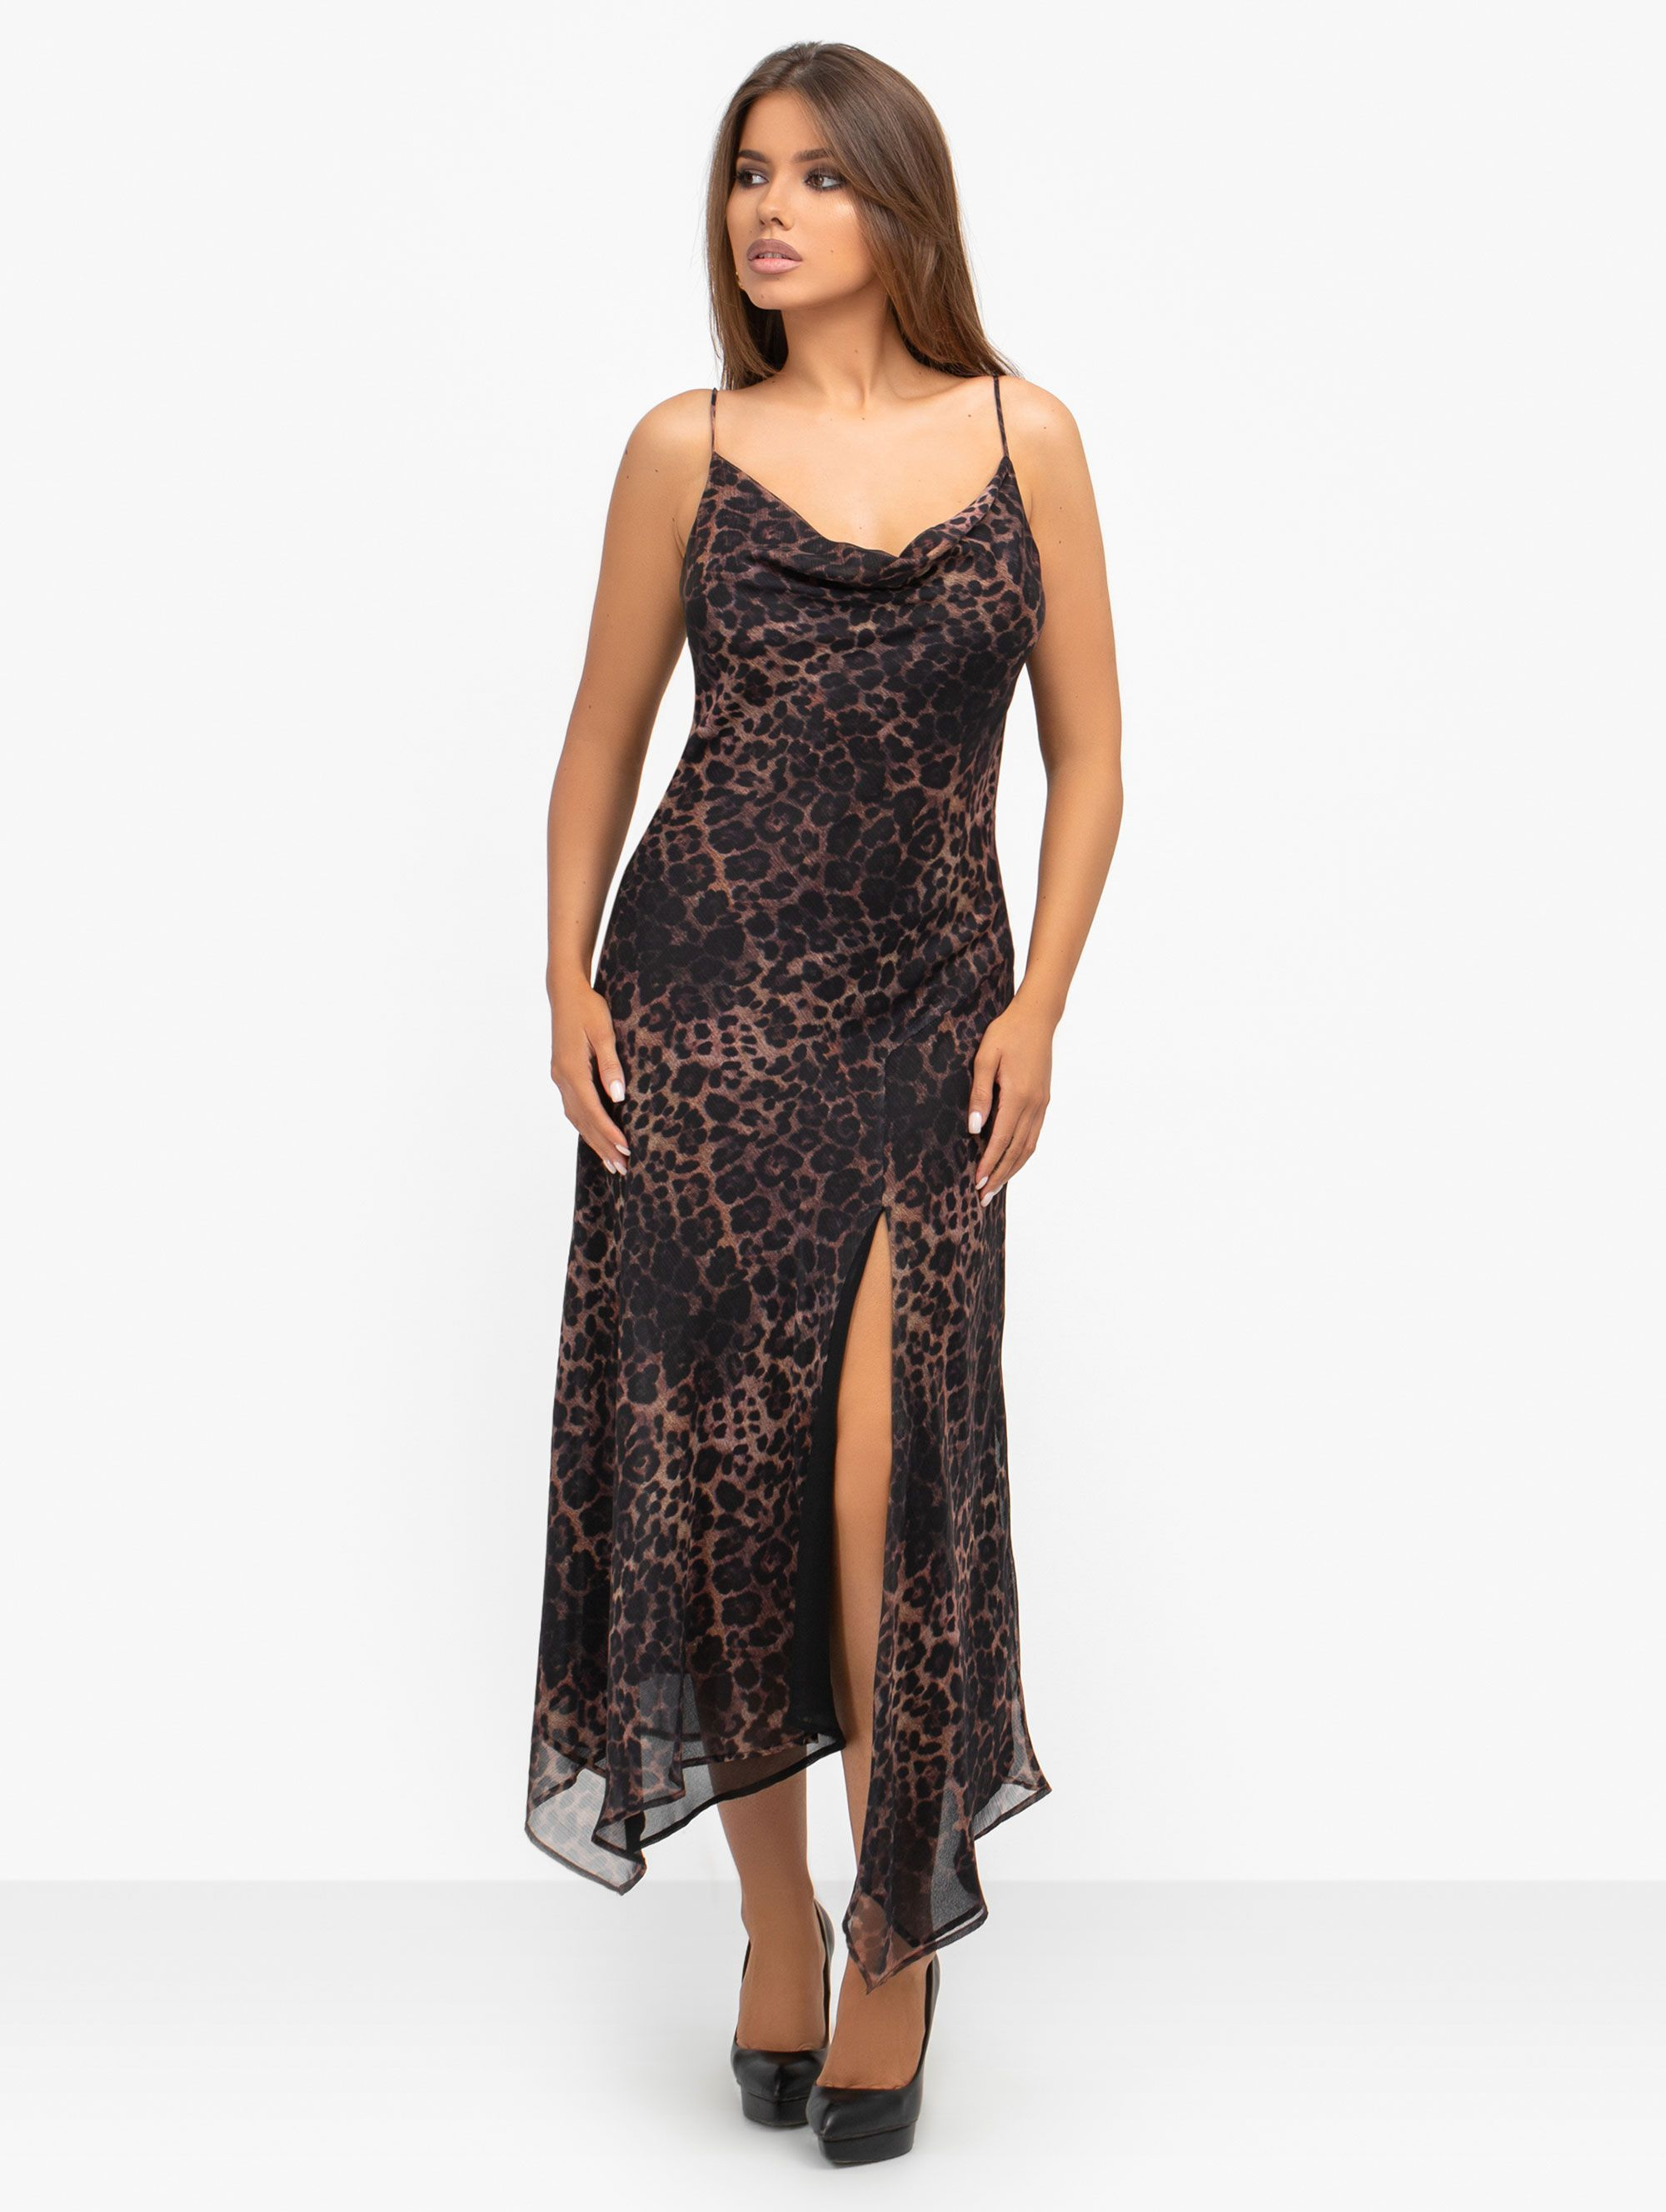 Misha Collection Johanna Midi Dress